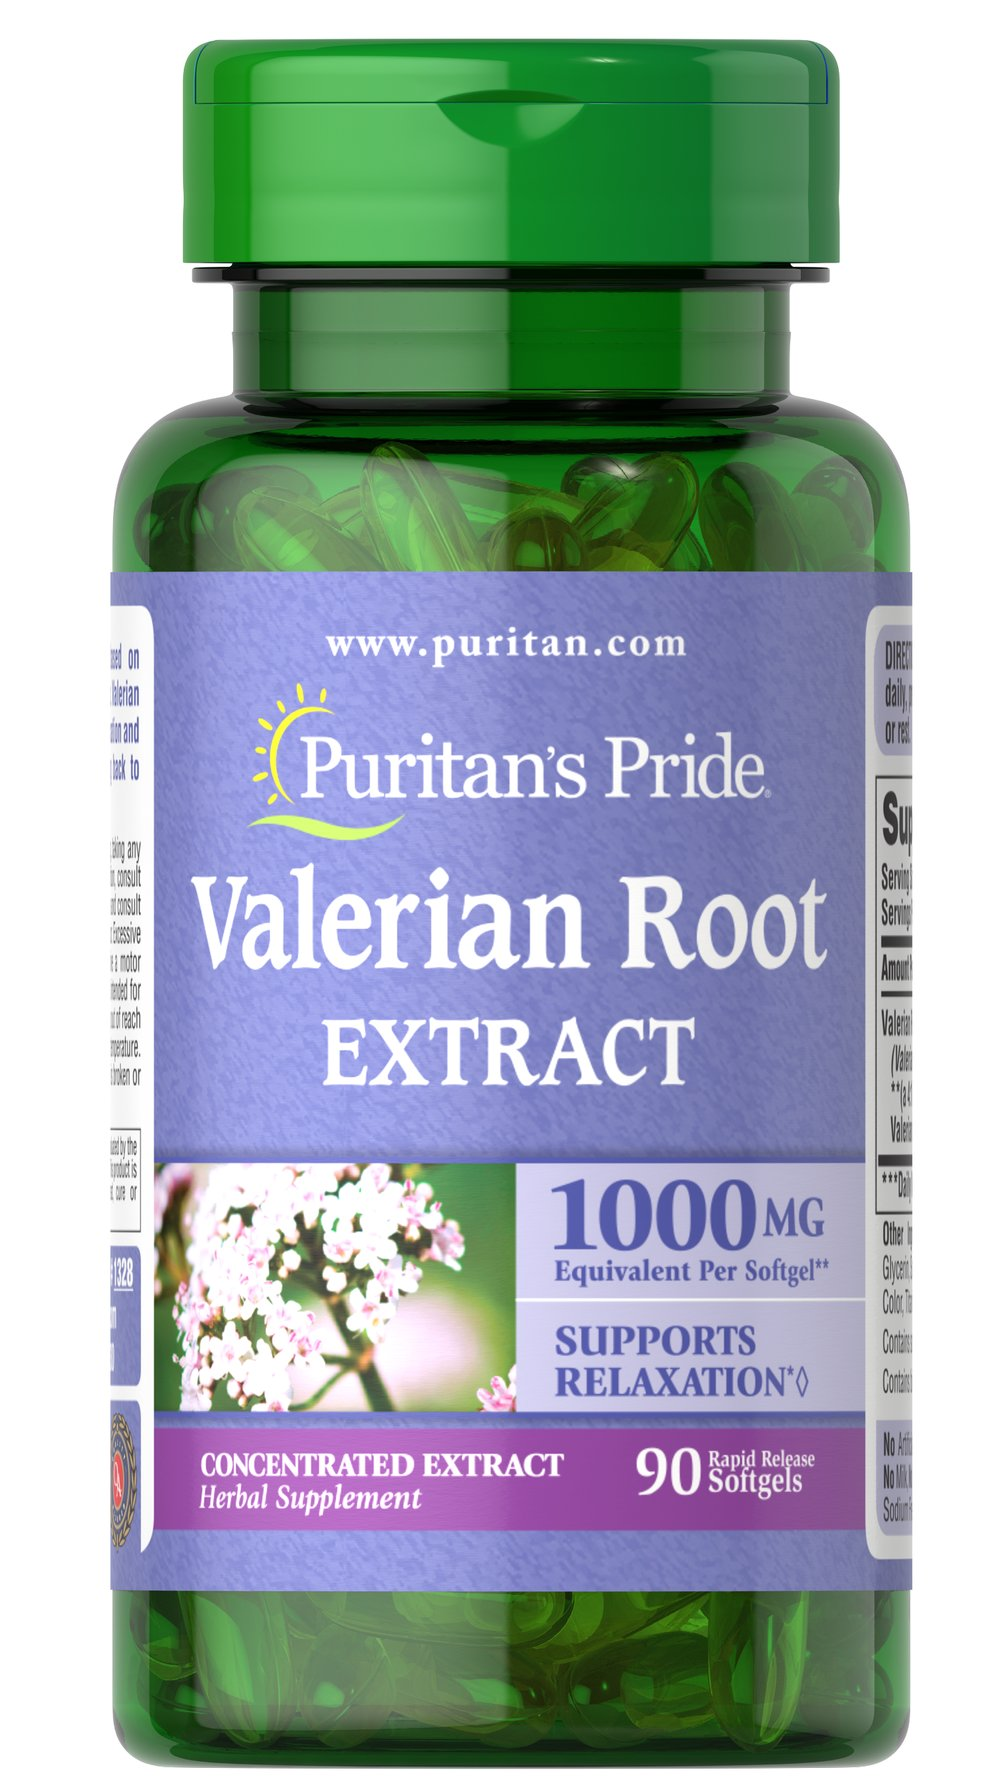 Valerian Root 1000 mg <p>Supports Relaxation**</p><p>Valerian works in harmony with your natural cycle to help promote relaxation, so you can leave your busy day behind and get the tranquil rest you deserve.**</p> 90 Softgels 1000 mg $15.39